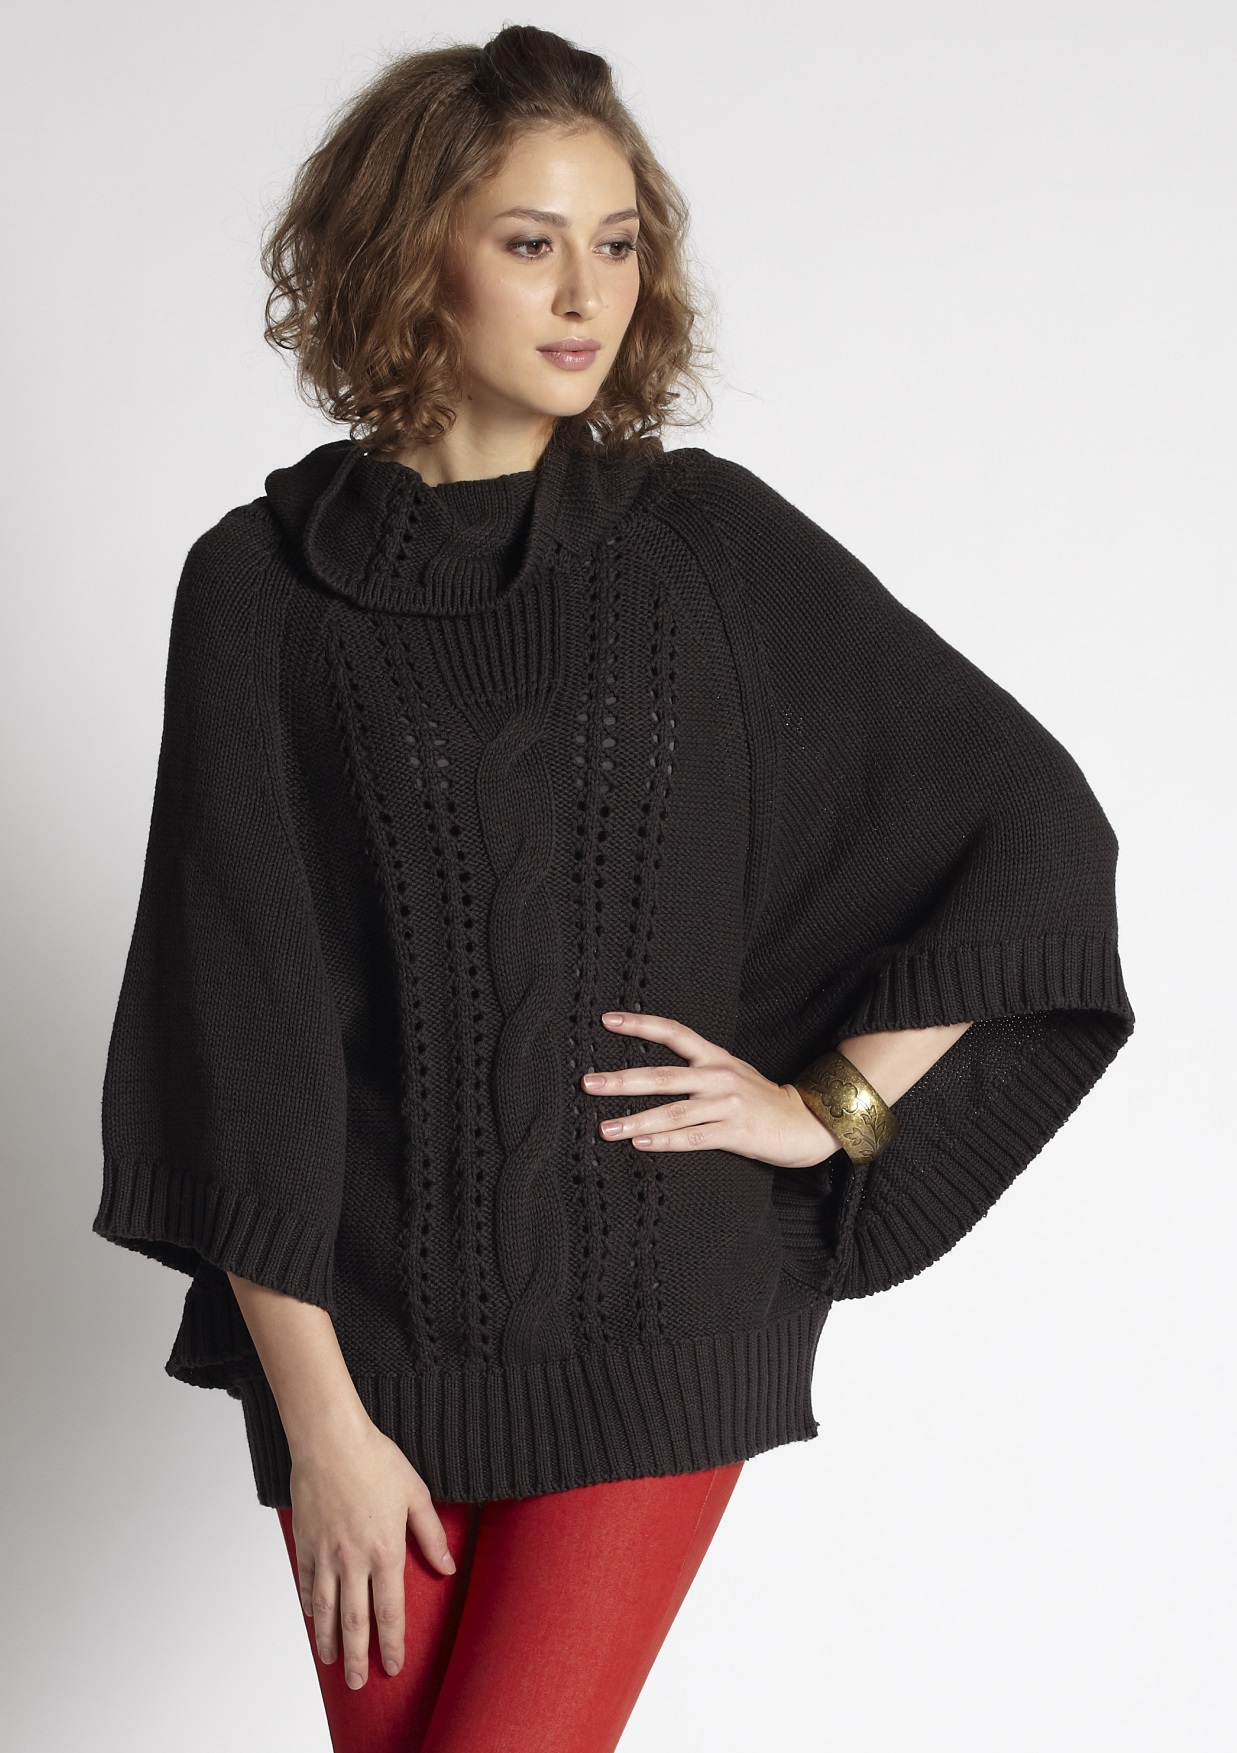 poncho sweater ... mothers-en-vogue-cable-knit-nursing-poncho-sweater- ... CEFQBJH